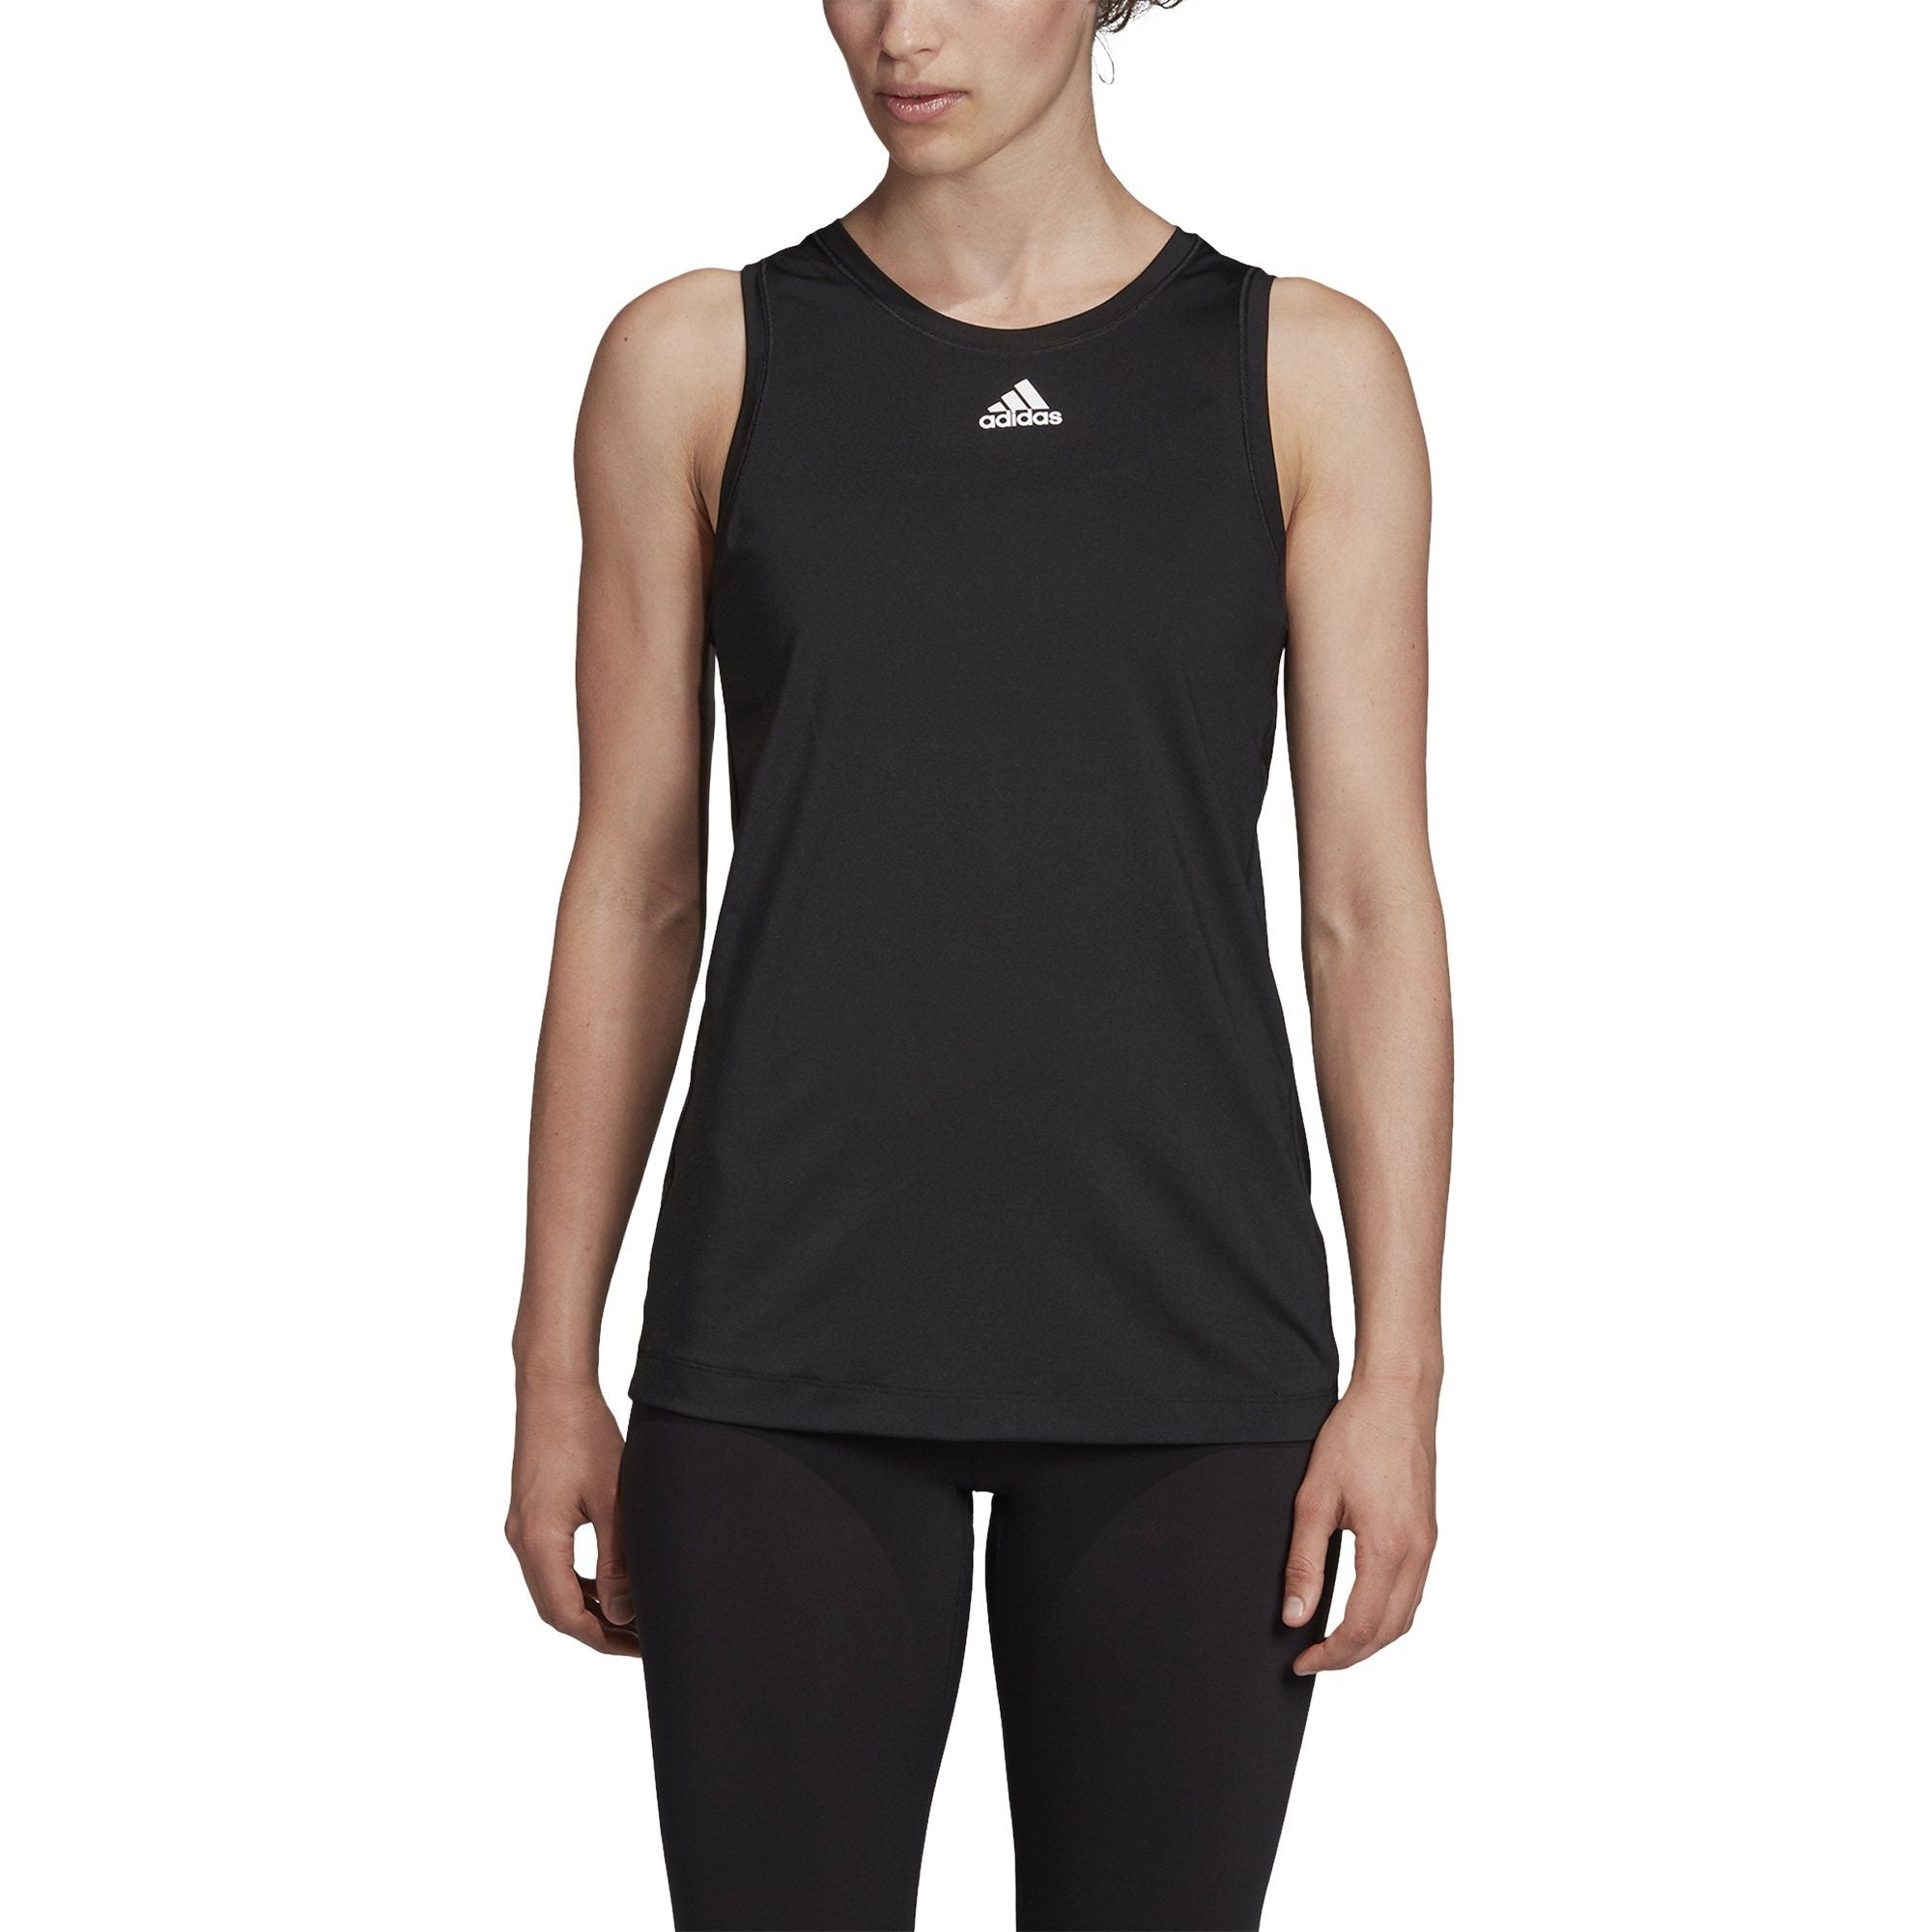 Adidas 2Way 3 Stripe Tie Tank - Black SP-ApparelTanks-Womens Adidas